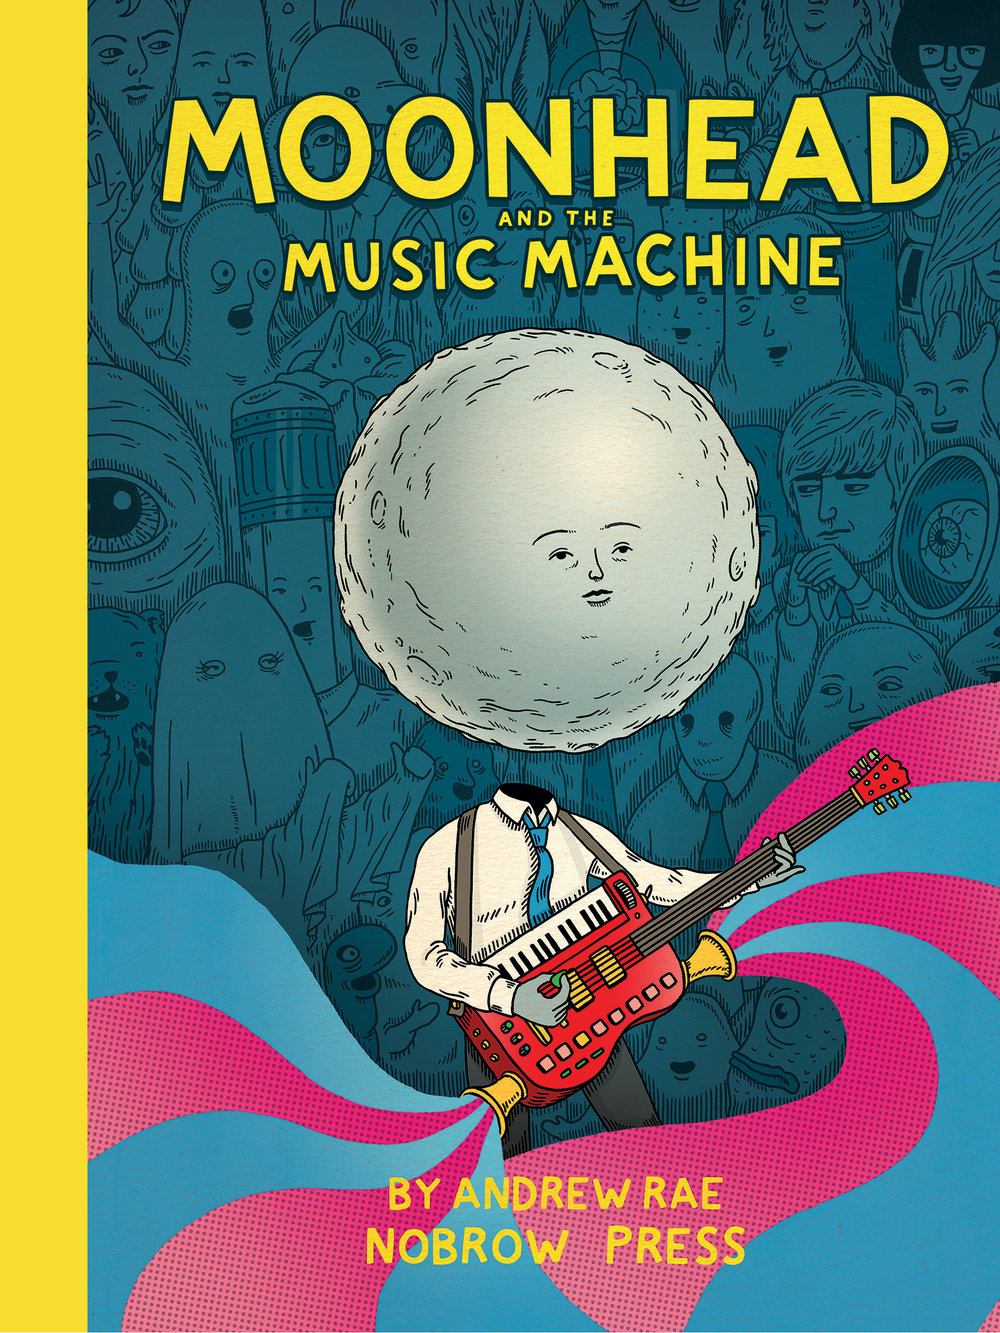 Moonhead and the Music Machine - by Andrew Rae